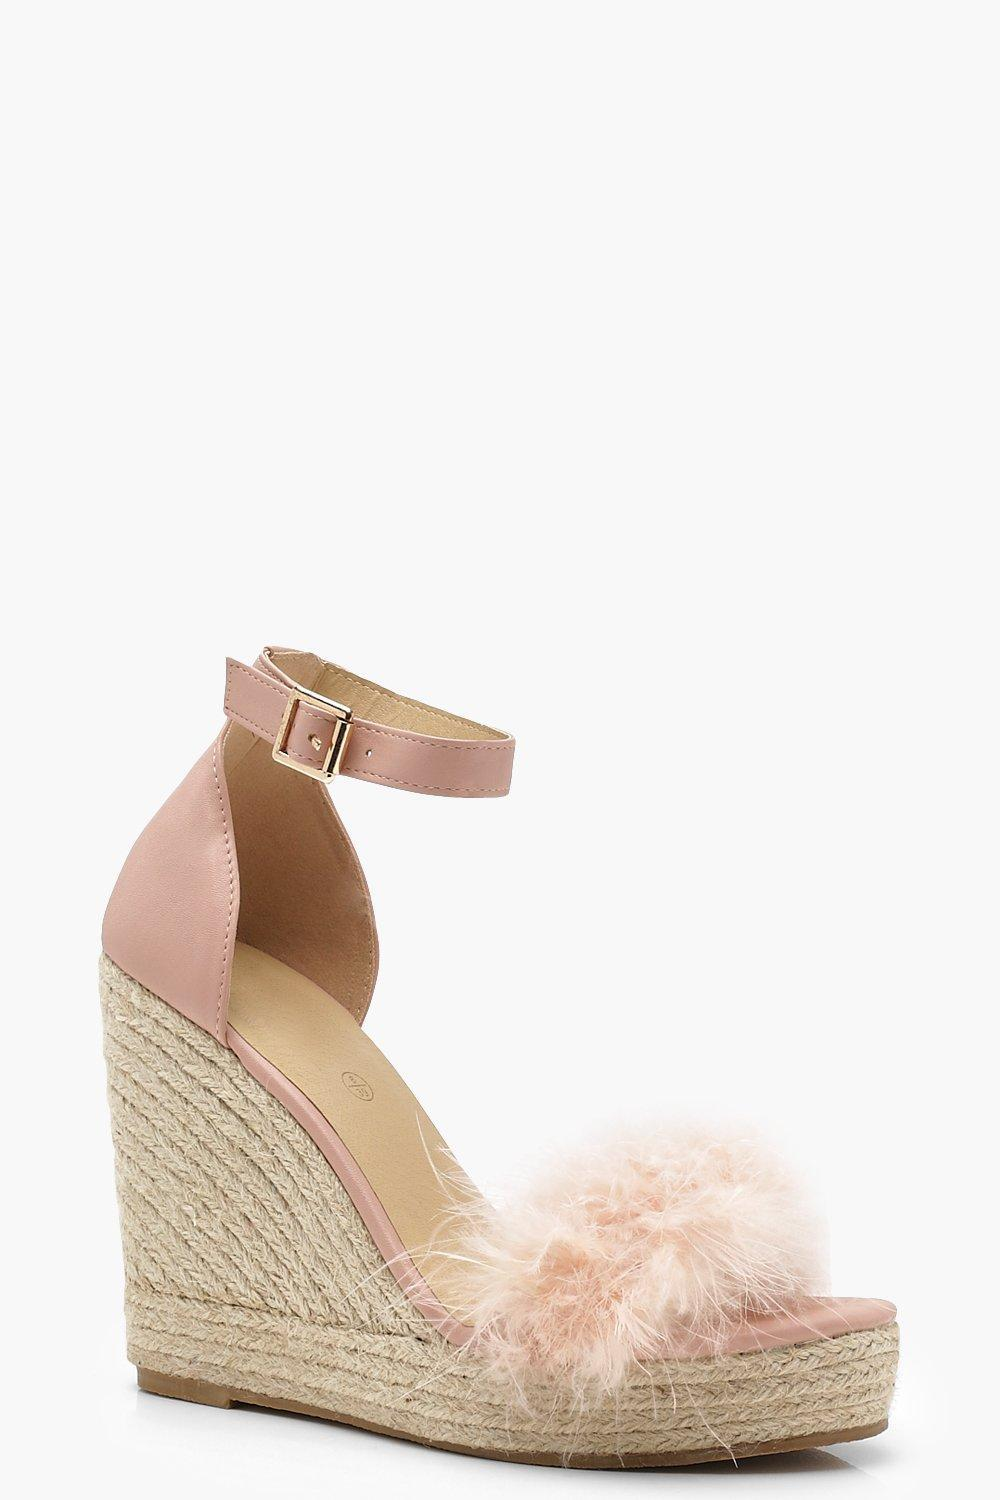 3a18242dcd8c Lyst - Boohoo Feather Trim Espadrille Wedges in Natural